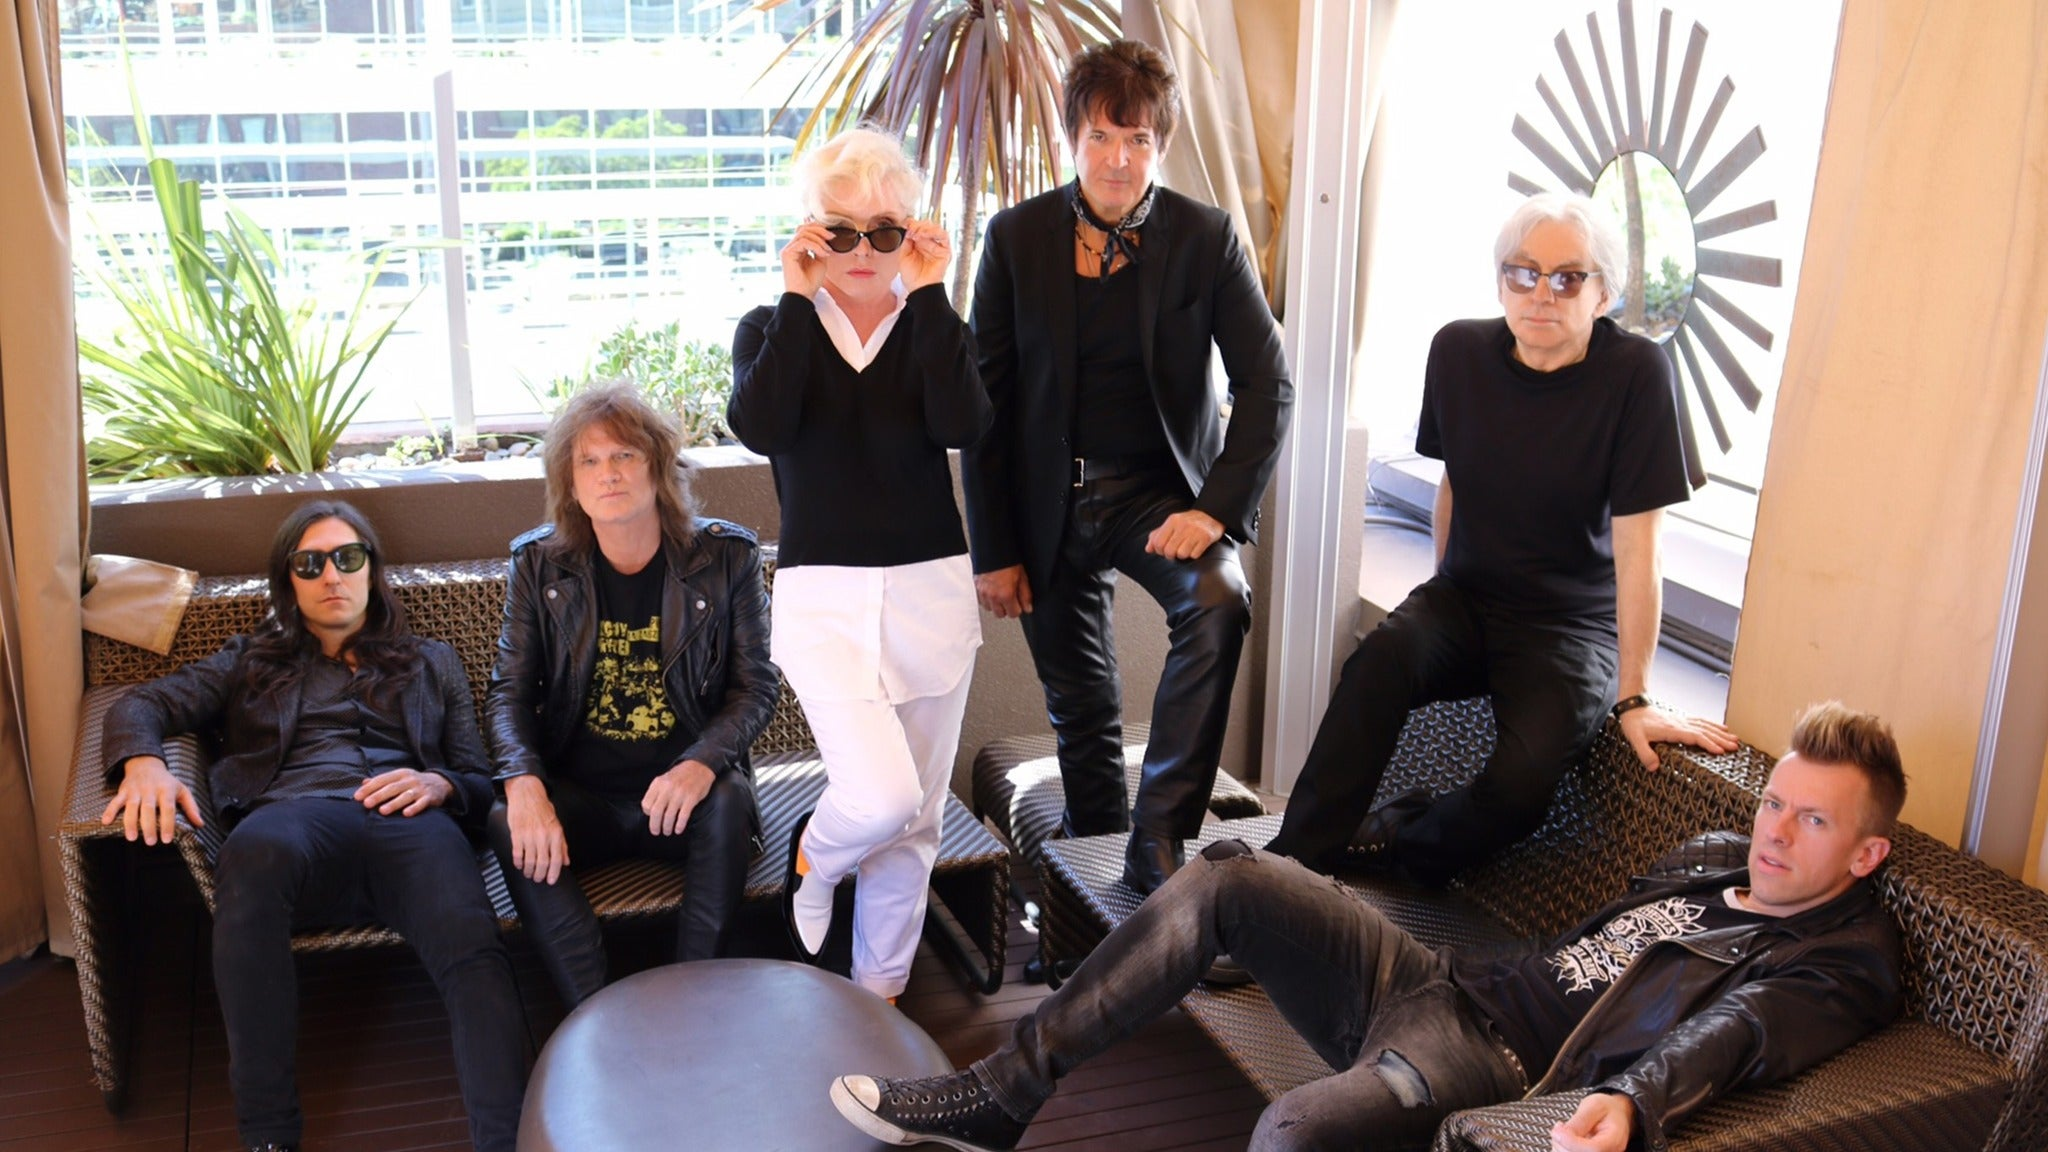 Blondie at KAISER PERMANENTE ARENA